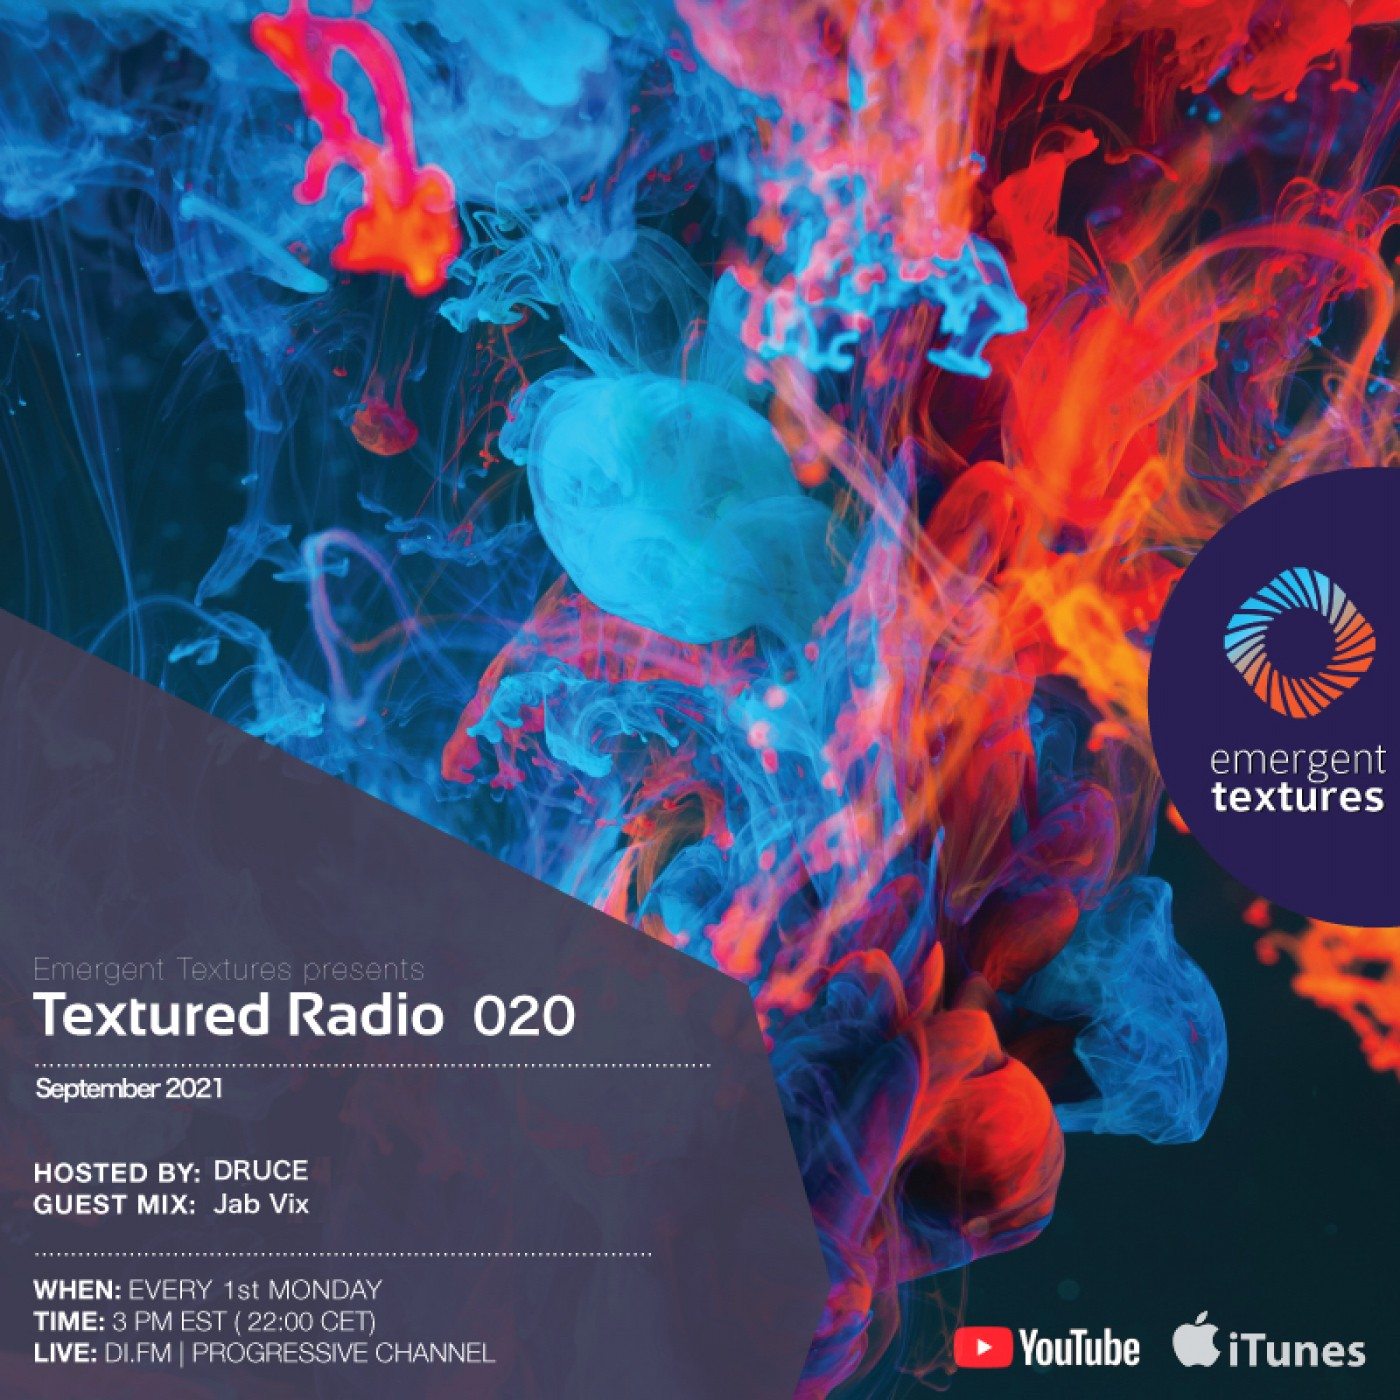 Textured Radio 020 hosted by Druce